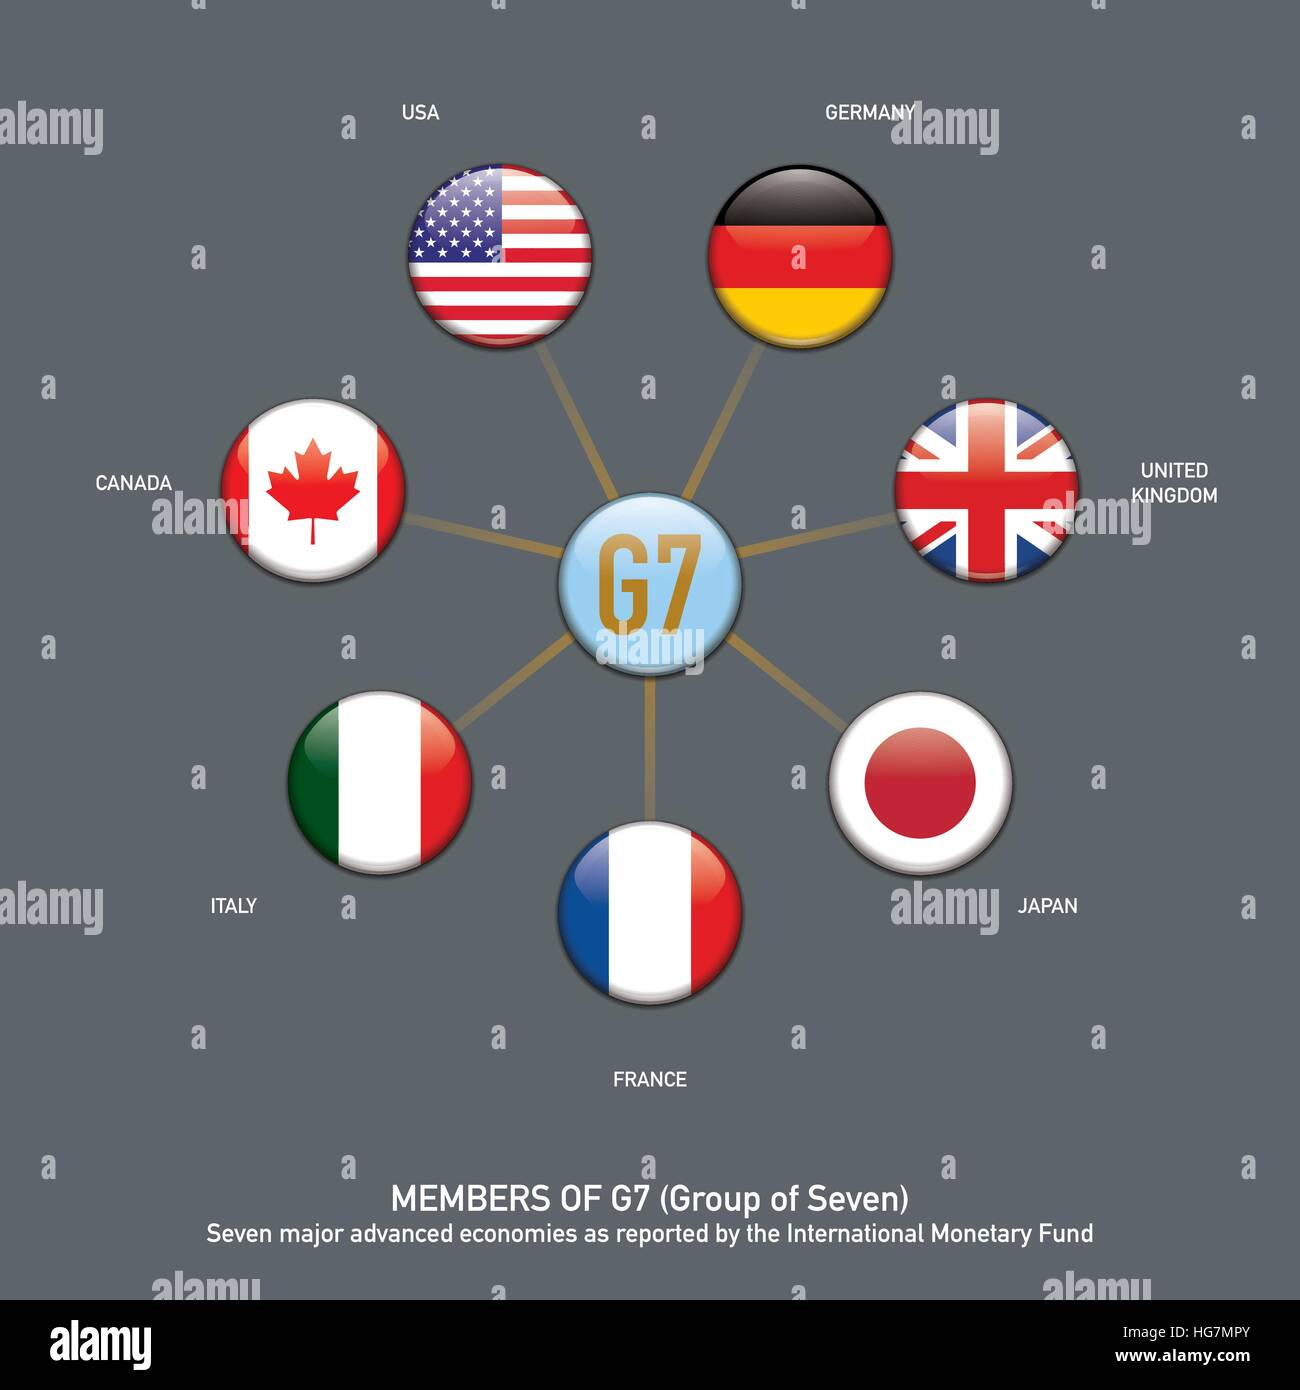 Info graphic of G7 members represented with flags in glass button style - Stock Vector